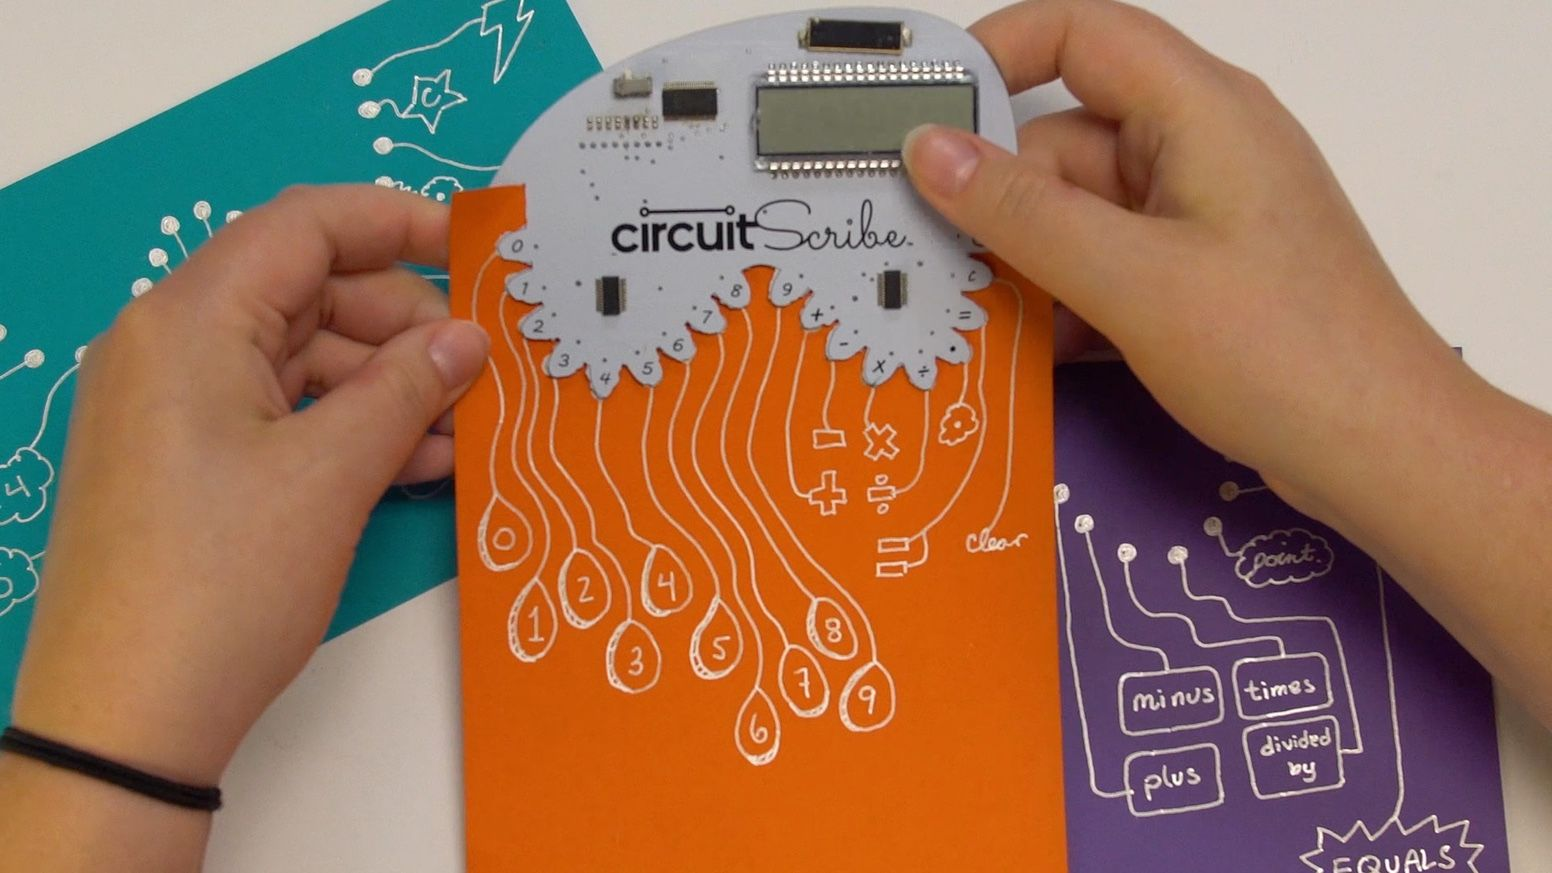 We Love Paper Based Electronics Created Diy Project Kits Using The Circuit Scribe Basic Kit Contains A Pen Conductive Ink To Help Creativity Take Flight